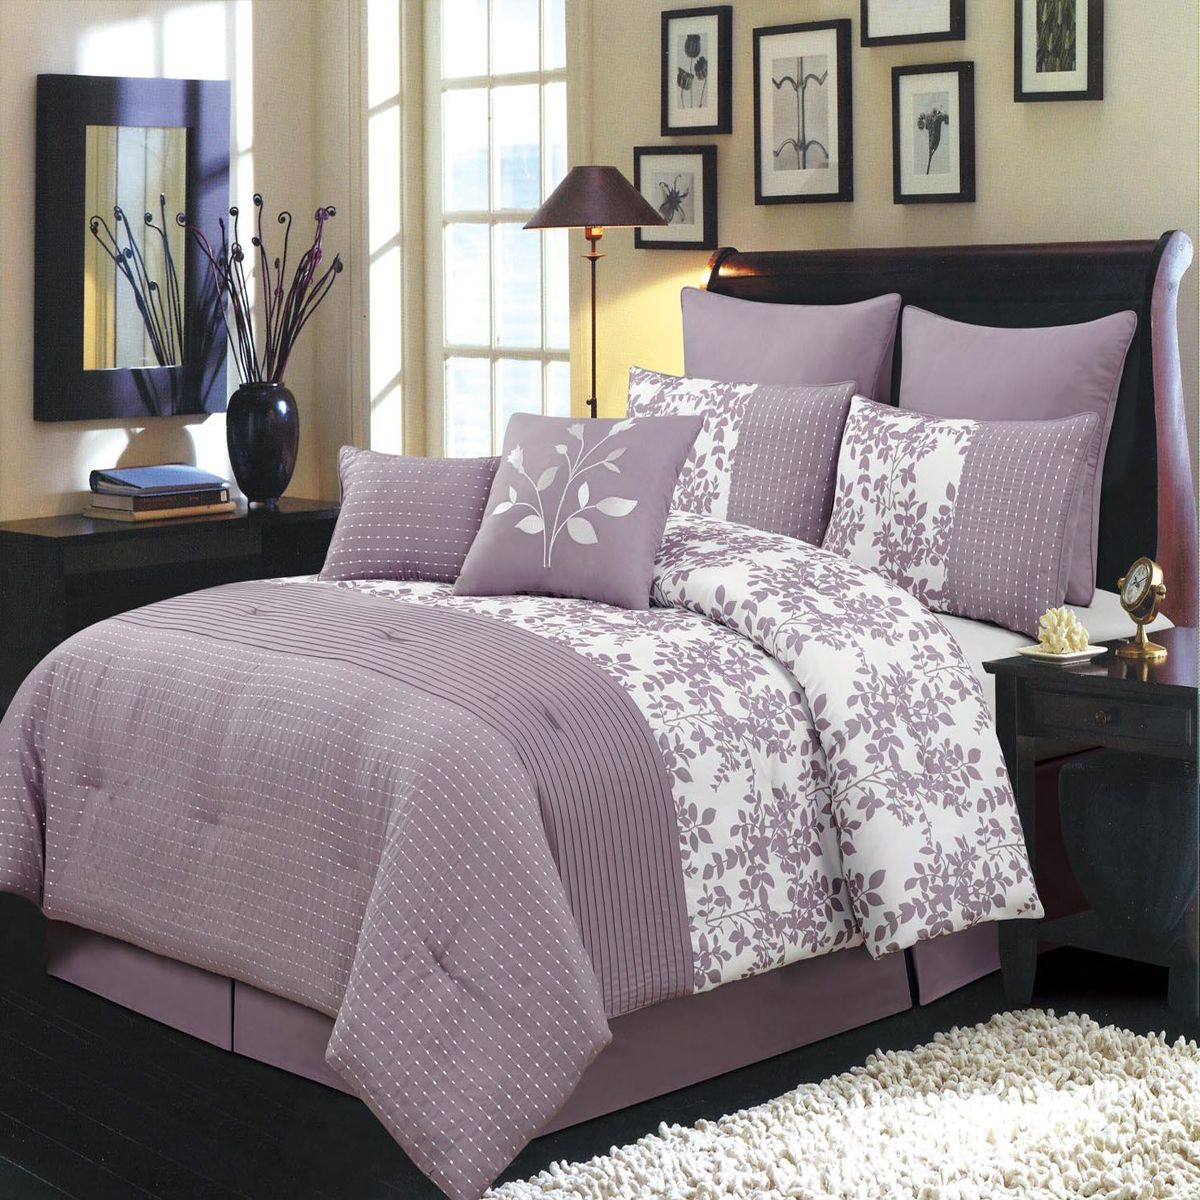 Scotts-sales Bliss Purple Luxury 12-Piece Bed in a bag Comforter Set